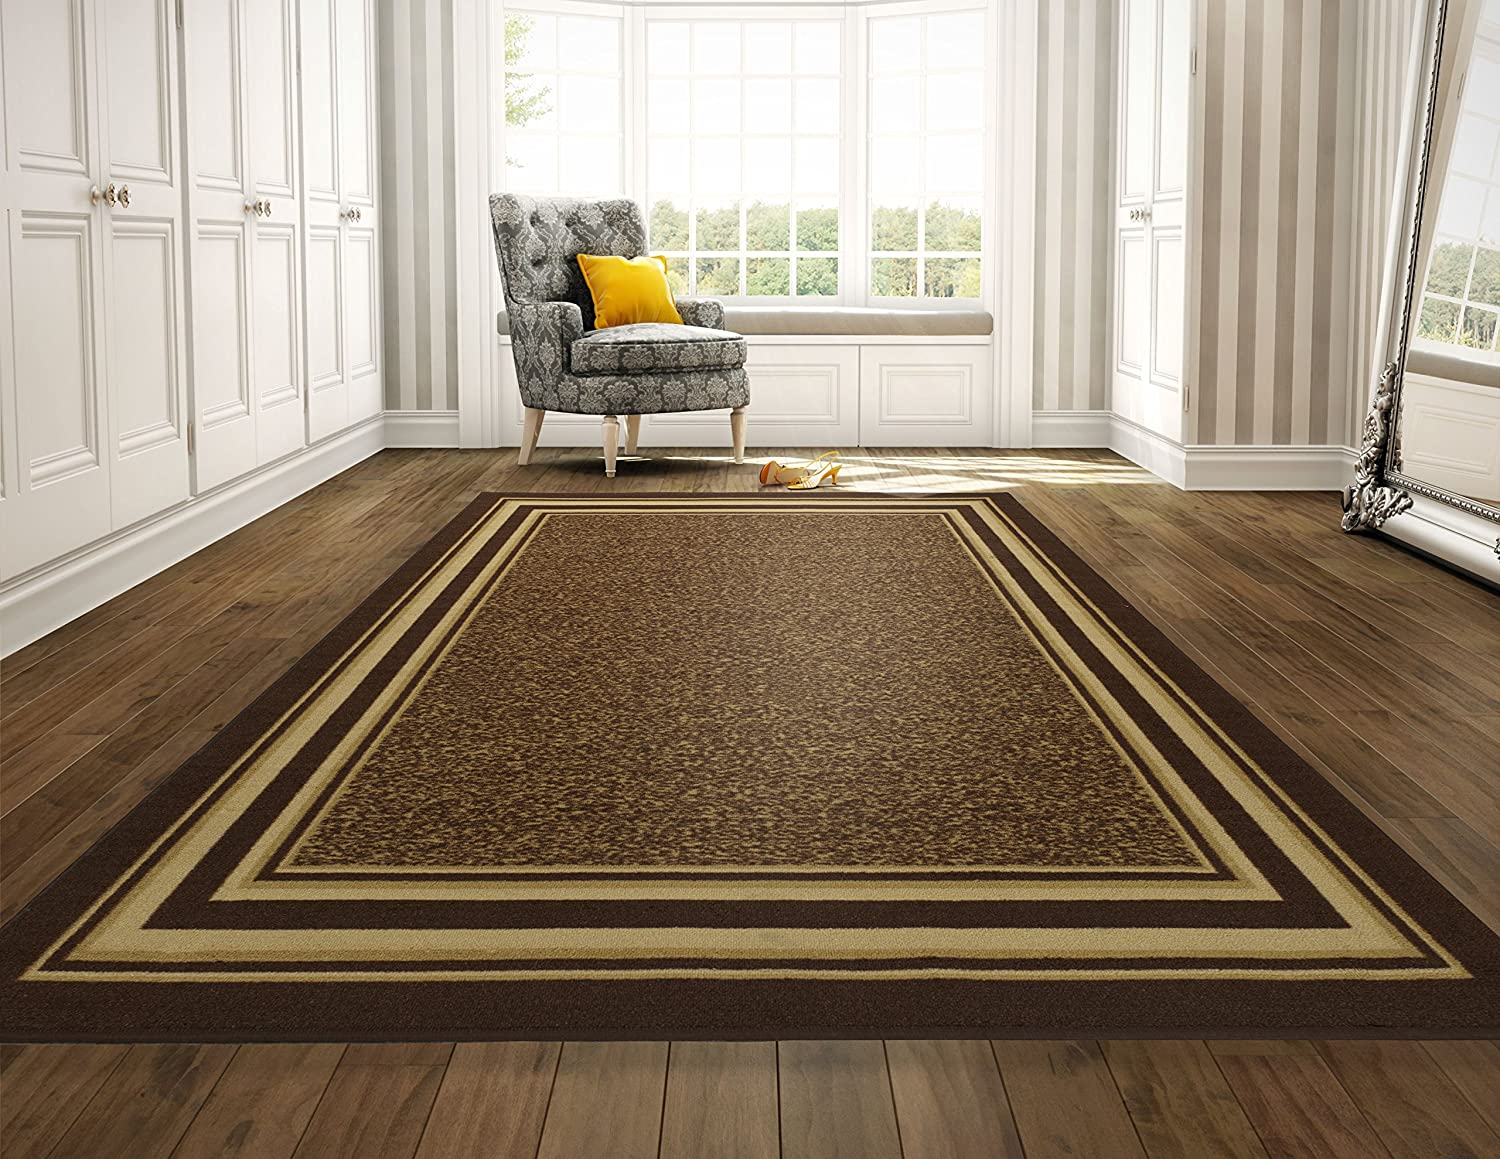 Ottomanson Ottohome Collection Brown Color Contemporary Bordered Design Runner Rug With Non-Skid Rubber Backing, 1'10W x 7'0L OTH2318-2X7